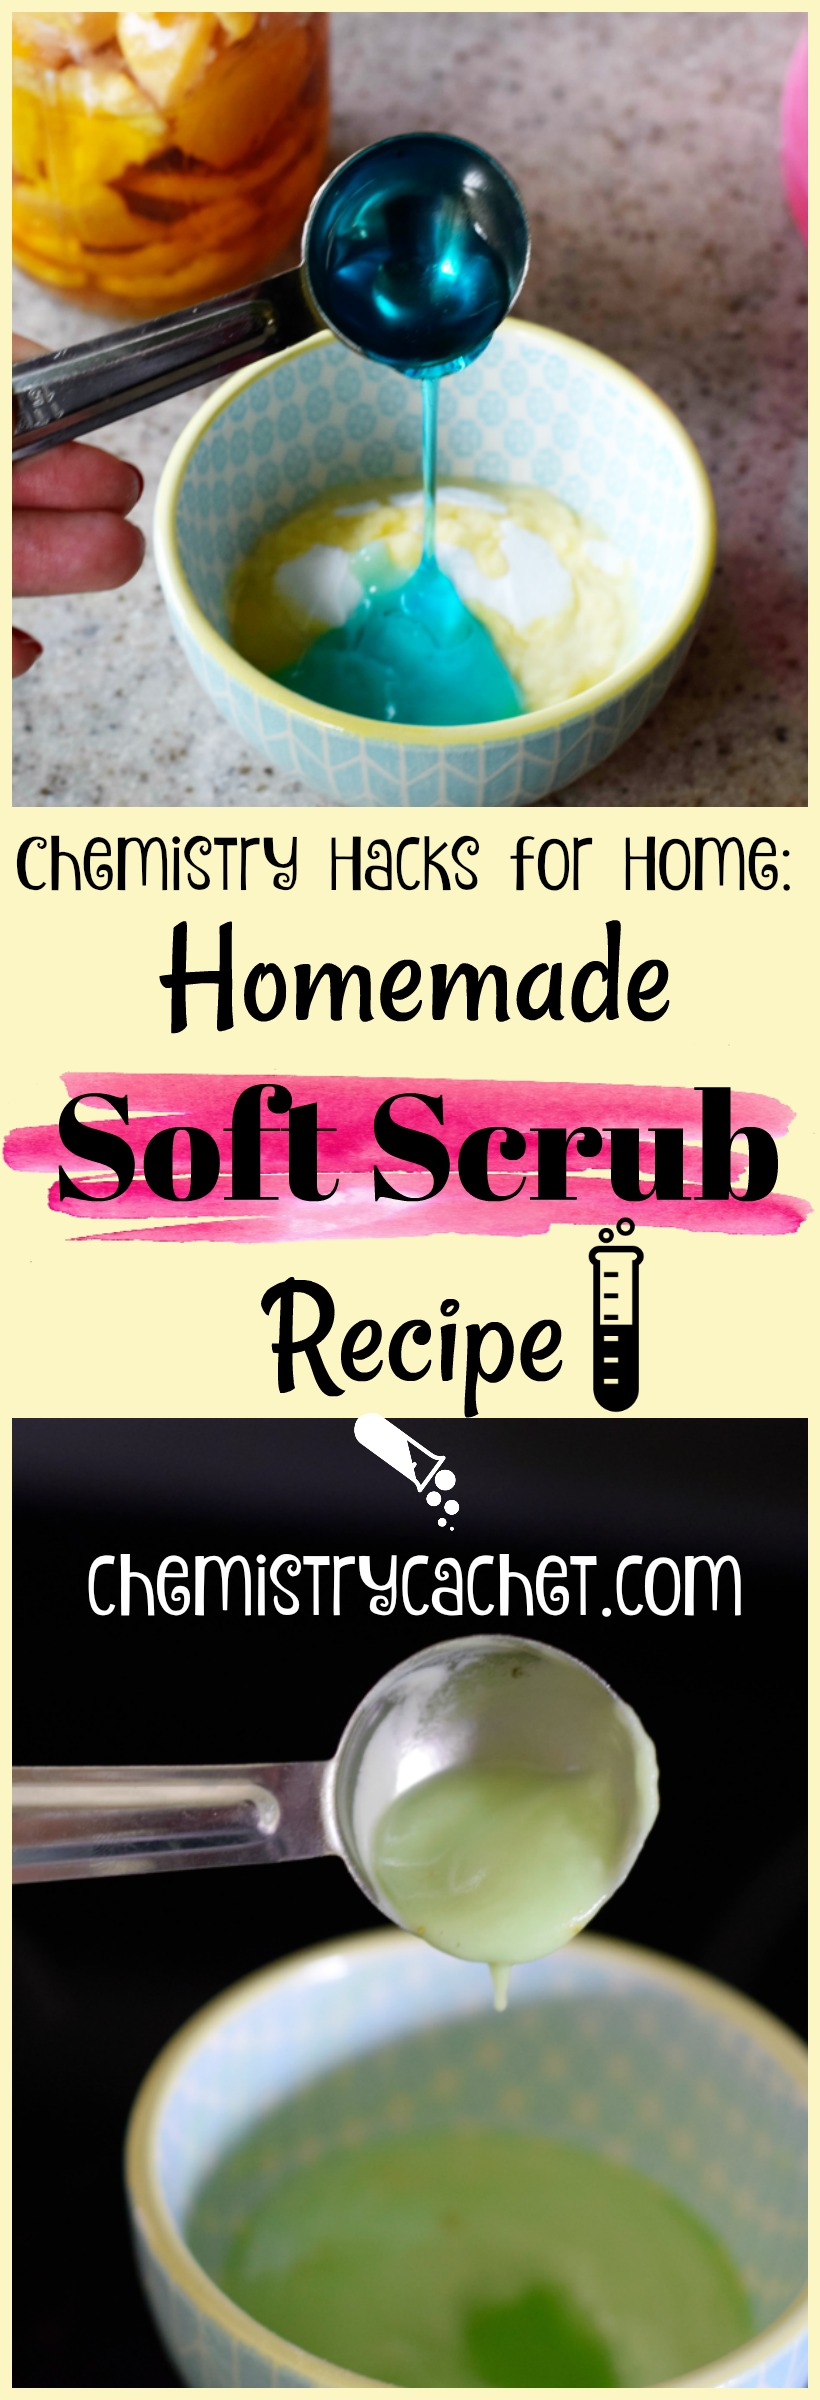 Chemistry Hacks for the Home Homemade Soft Scrub Recipe. Very effective for cleaning and better than store-bought on chemistrycachet.com